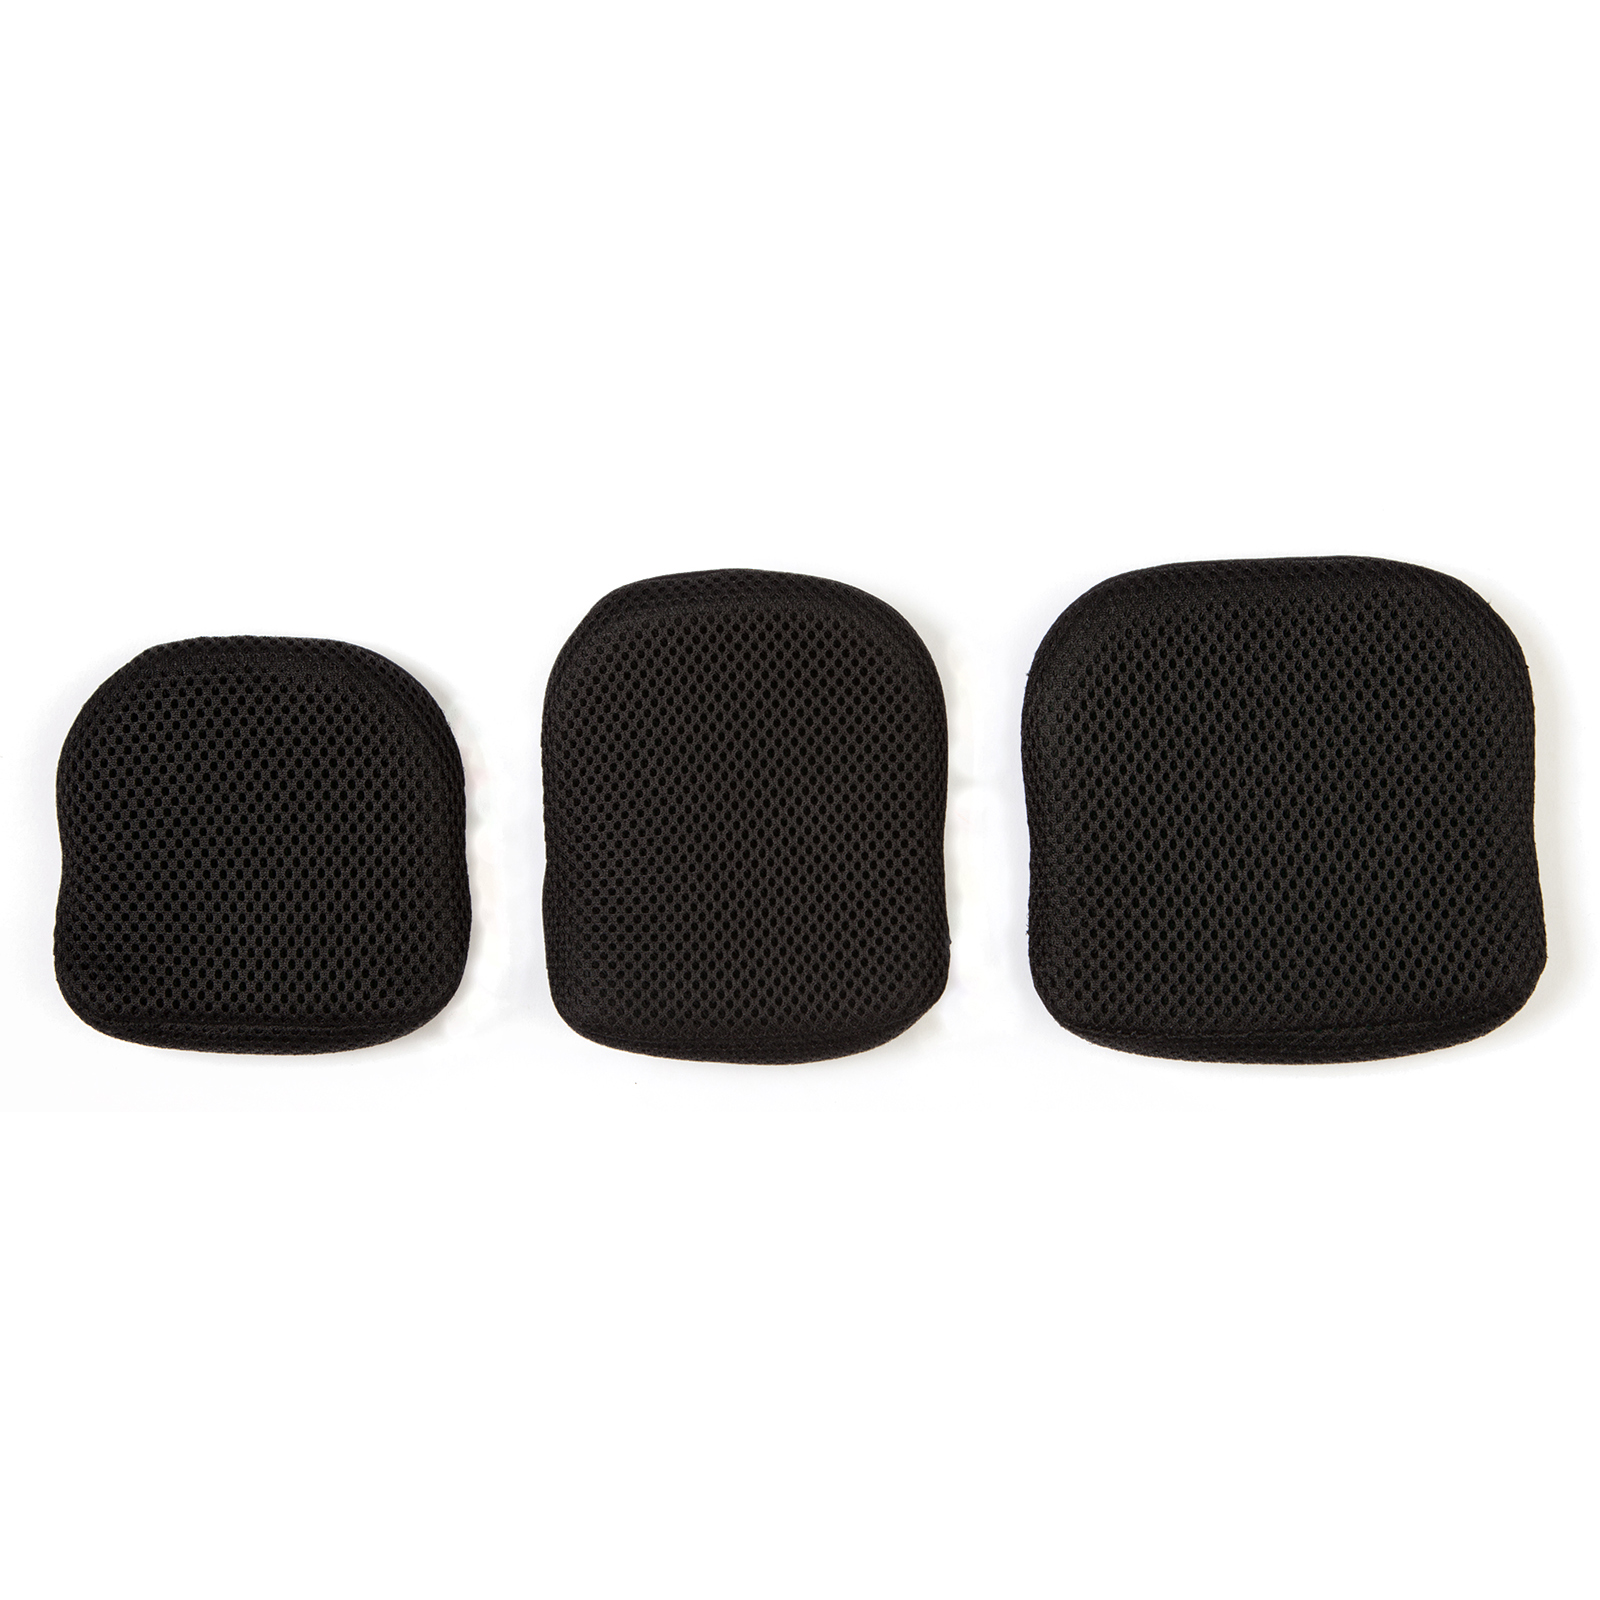 Lateral Air Pads